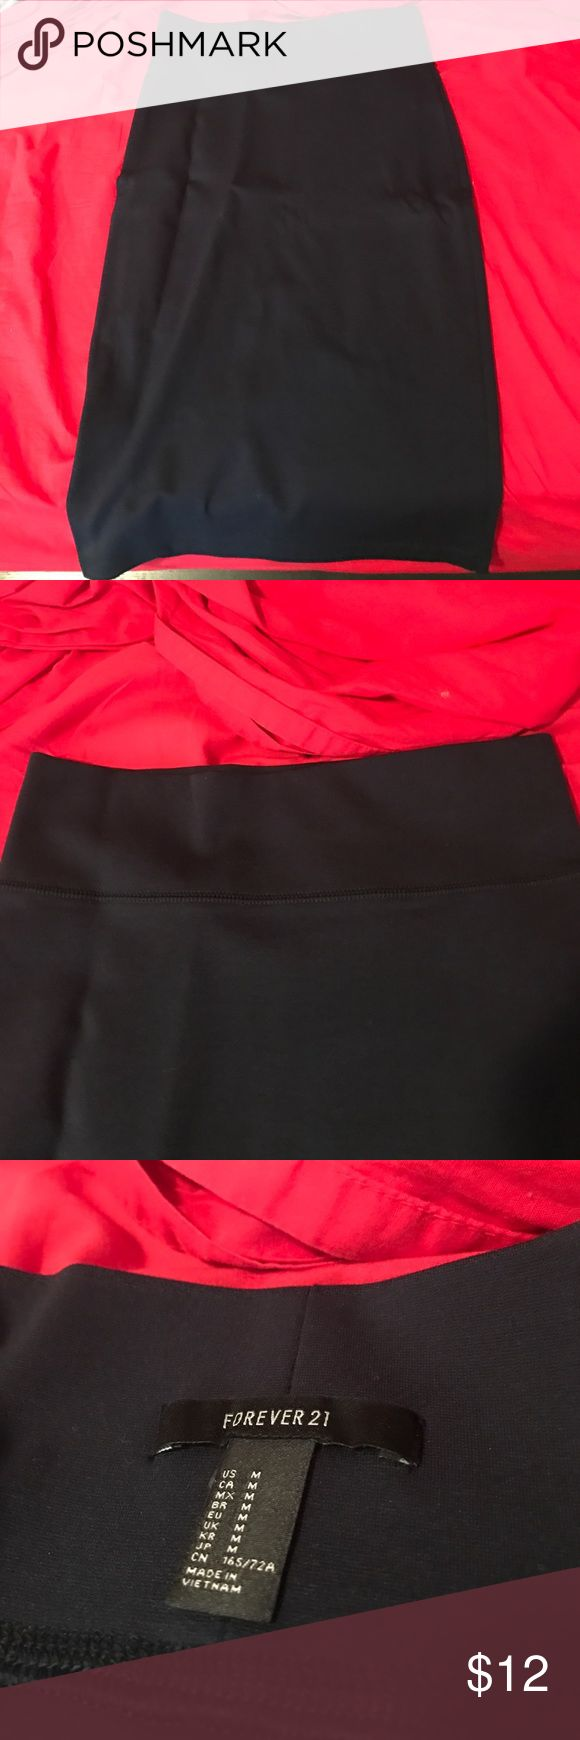 Navy blue pencil skirt from forever 21! Never worn. Navy blue pencil skirt, super soft. Wrinkles are from being hung on a hanger and not moved! Forever 21 Skirts Pencil